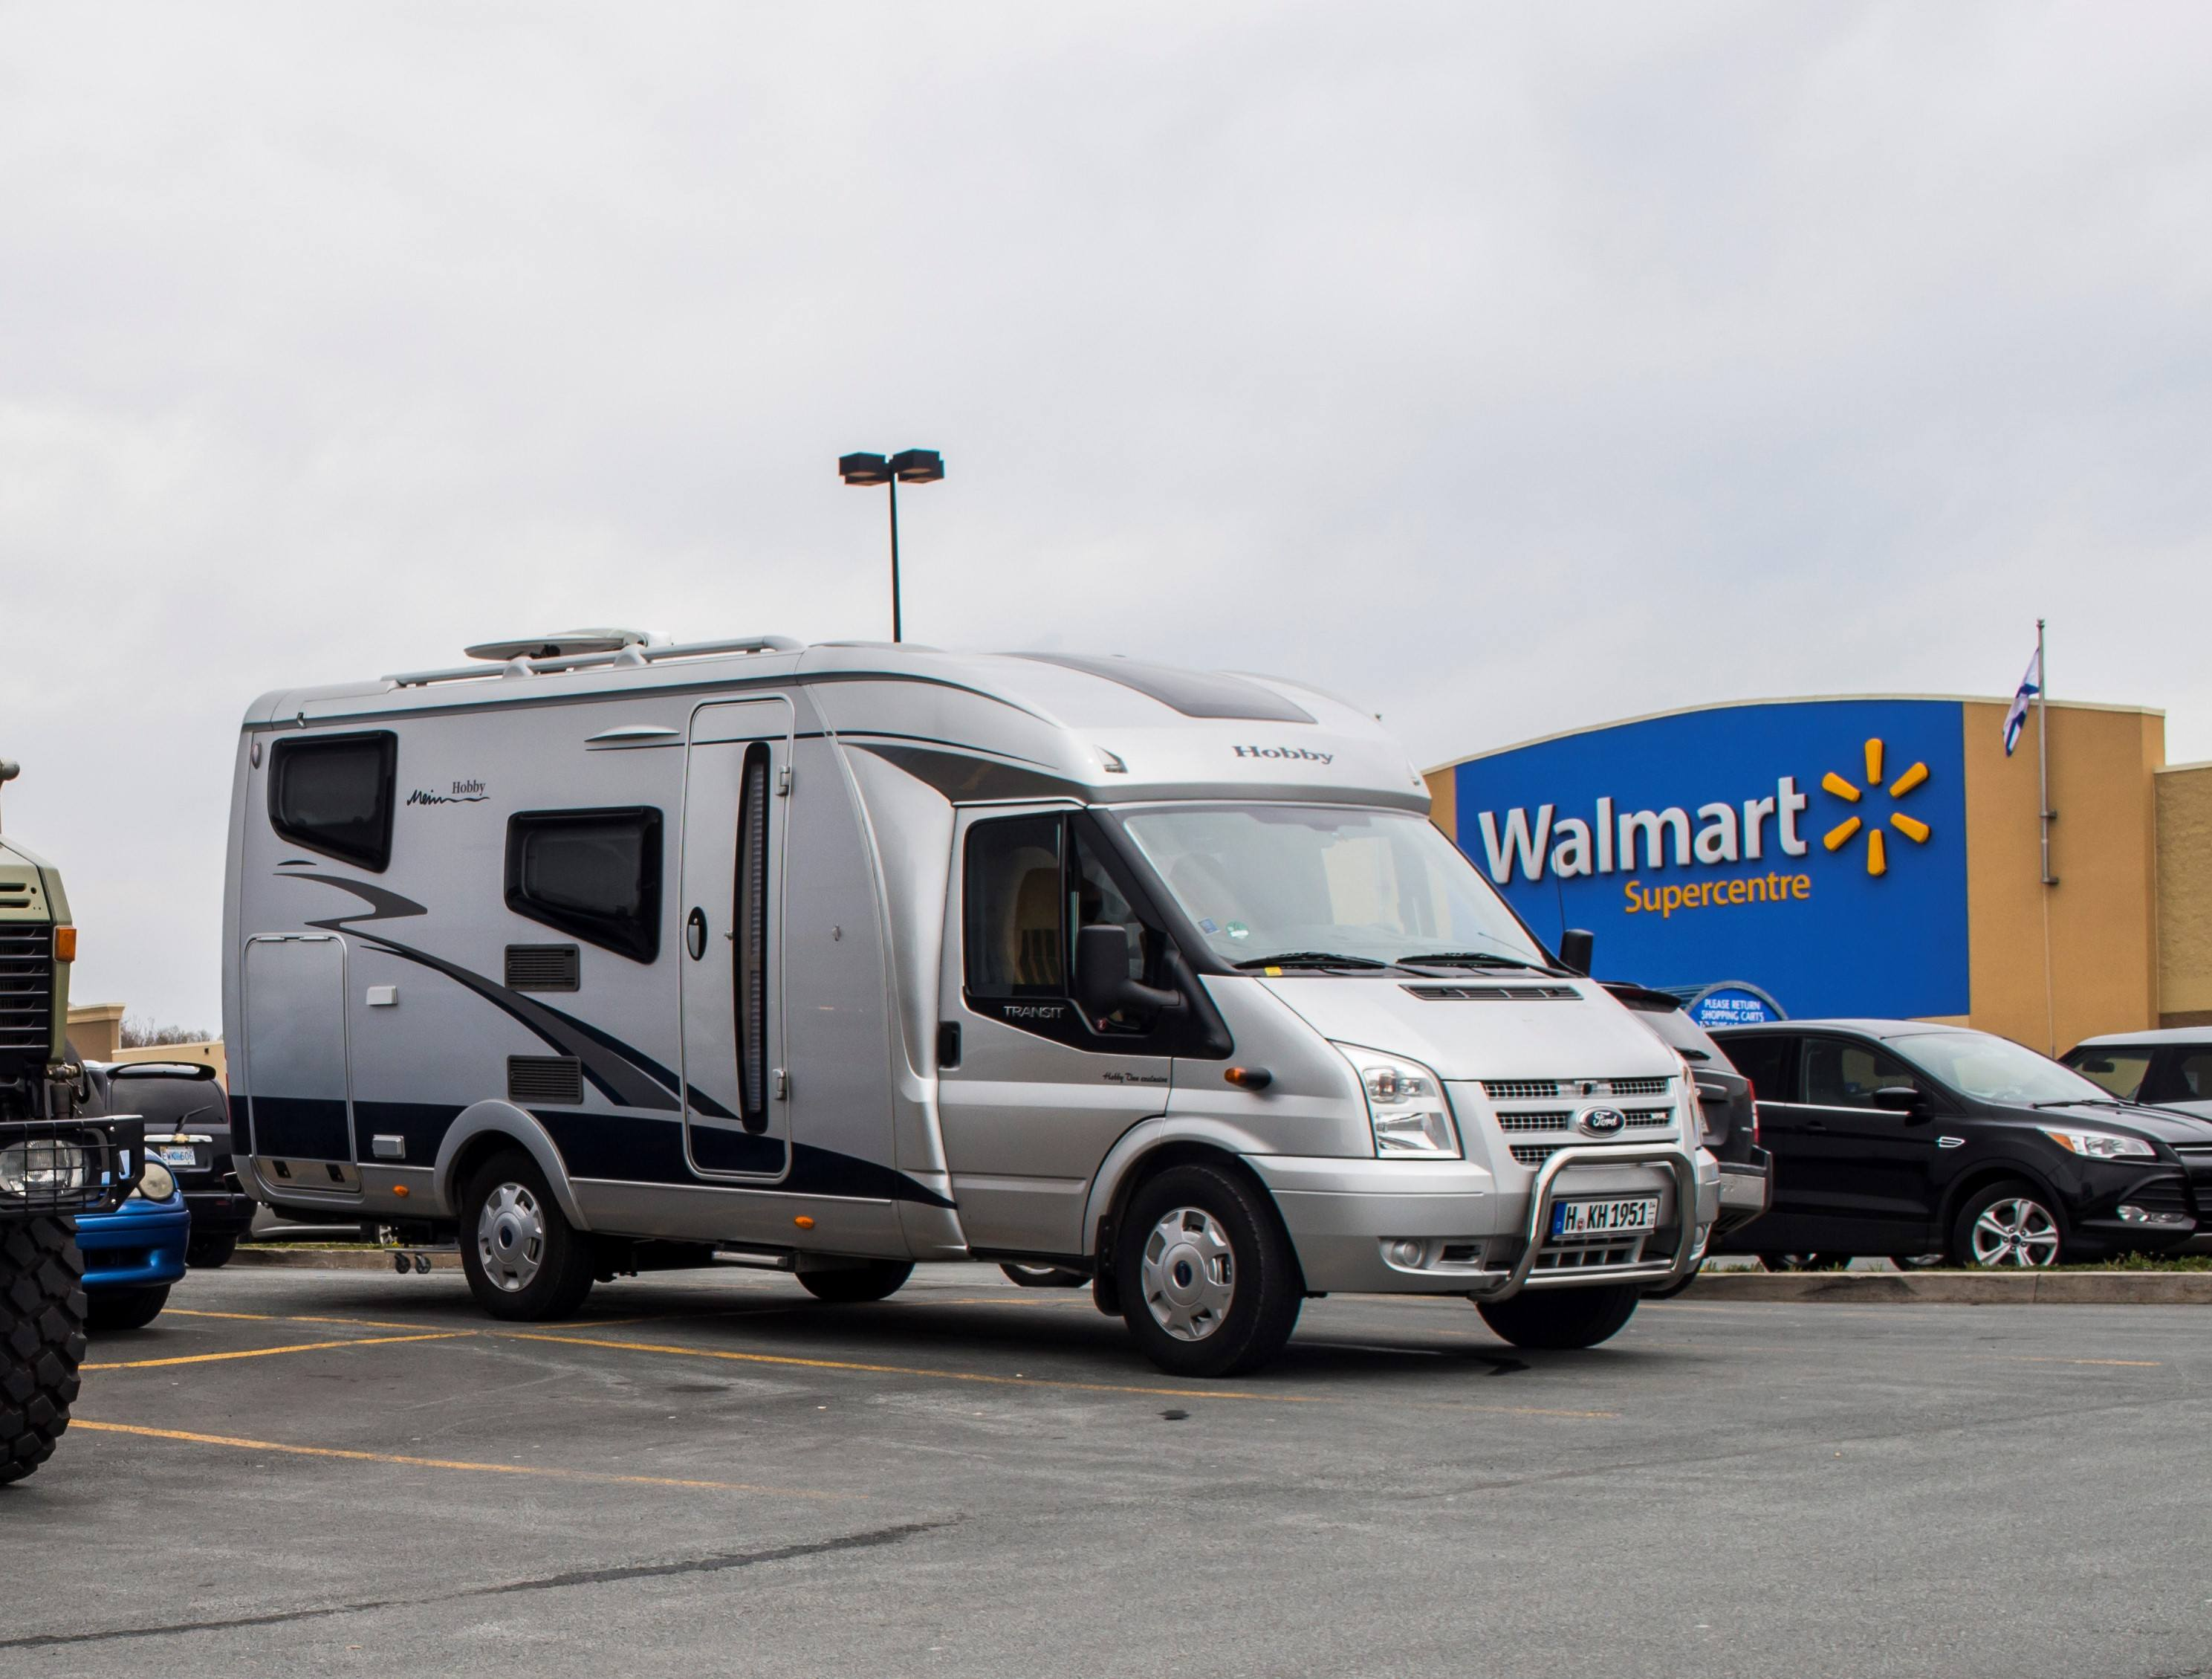 RV recreational vehicles at Walmart